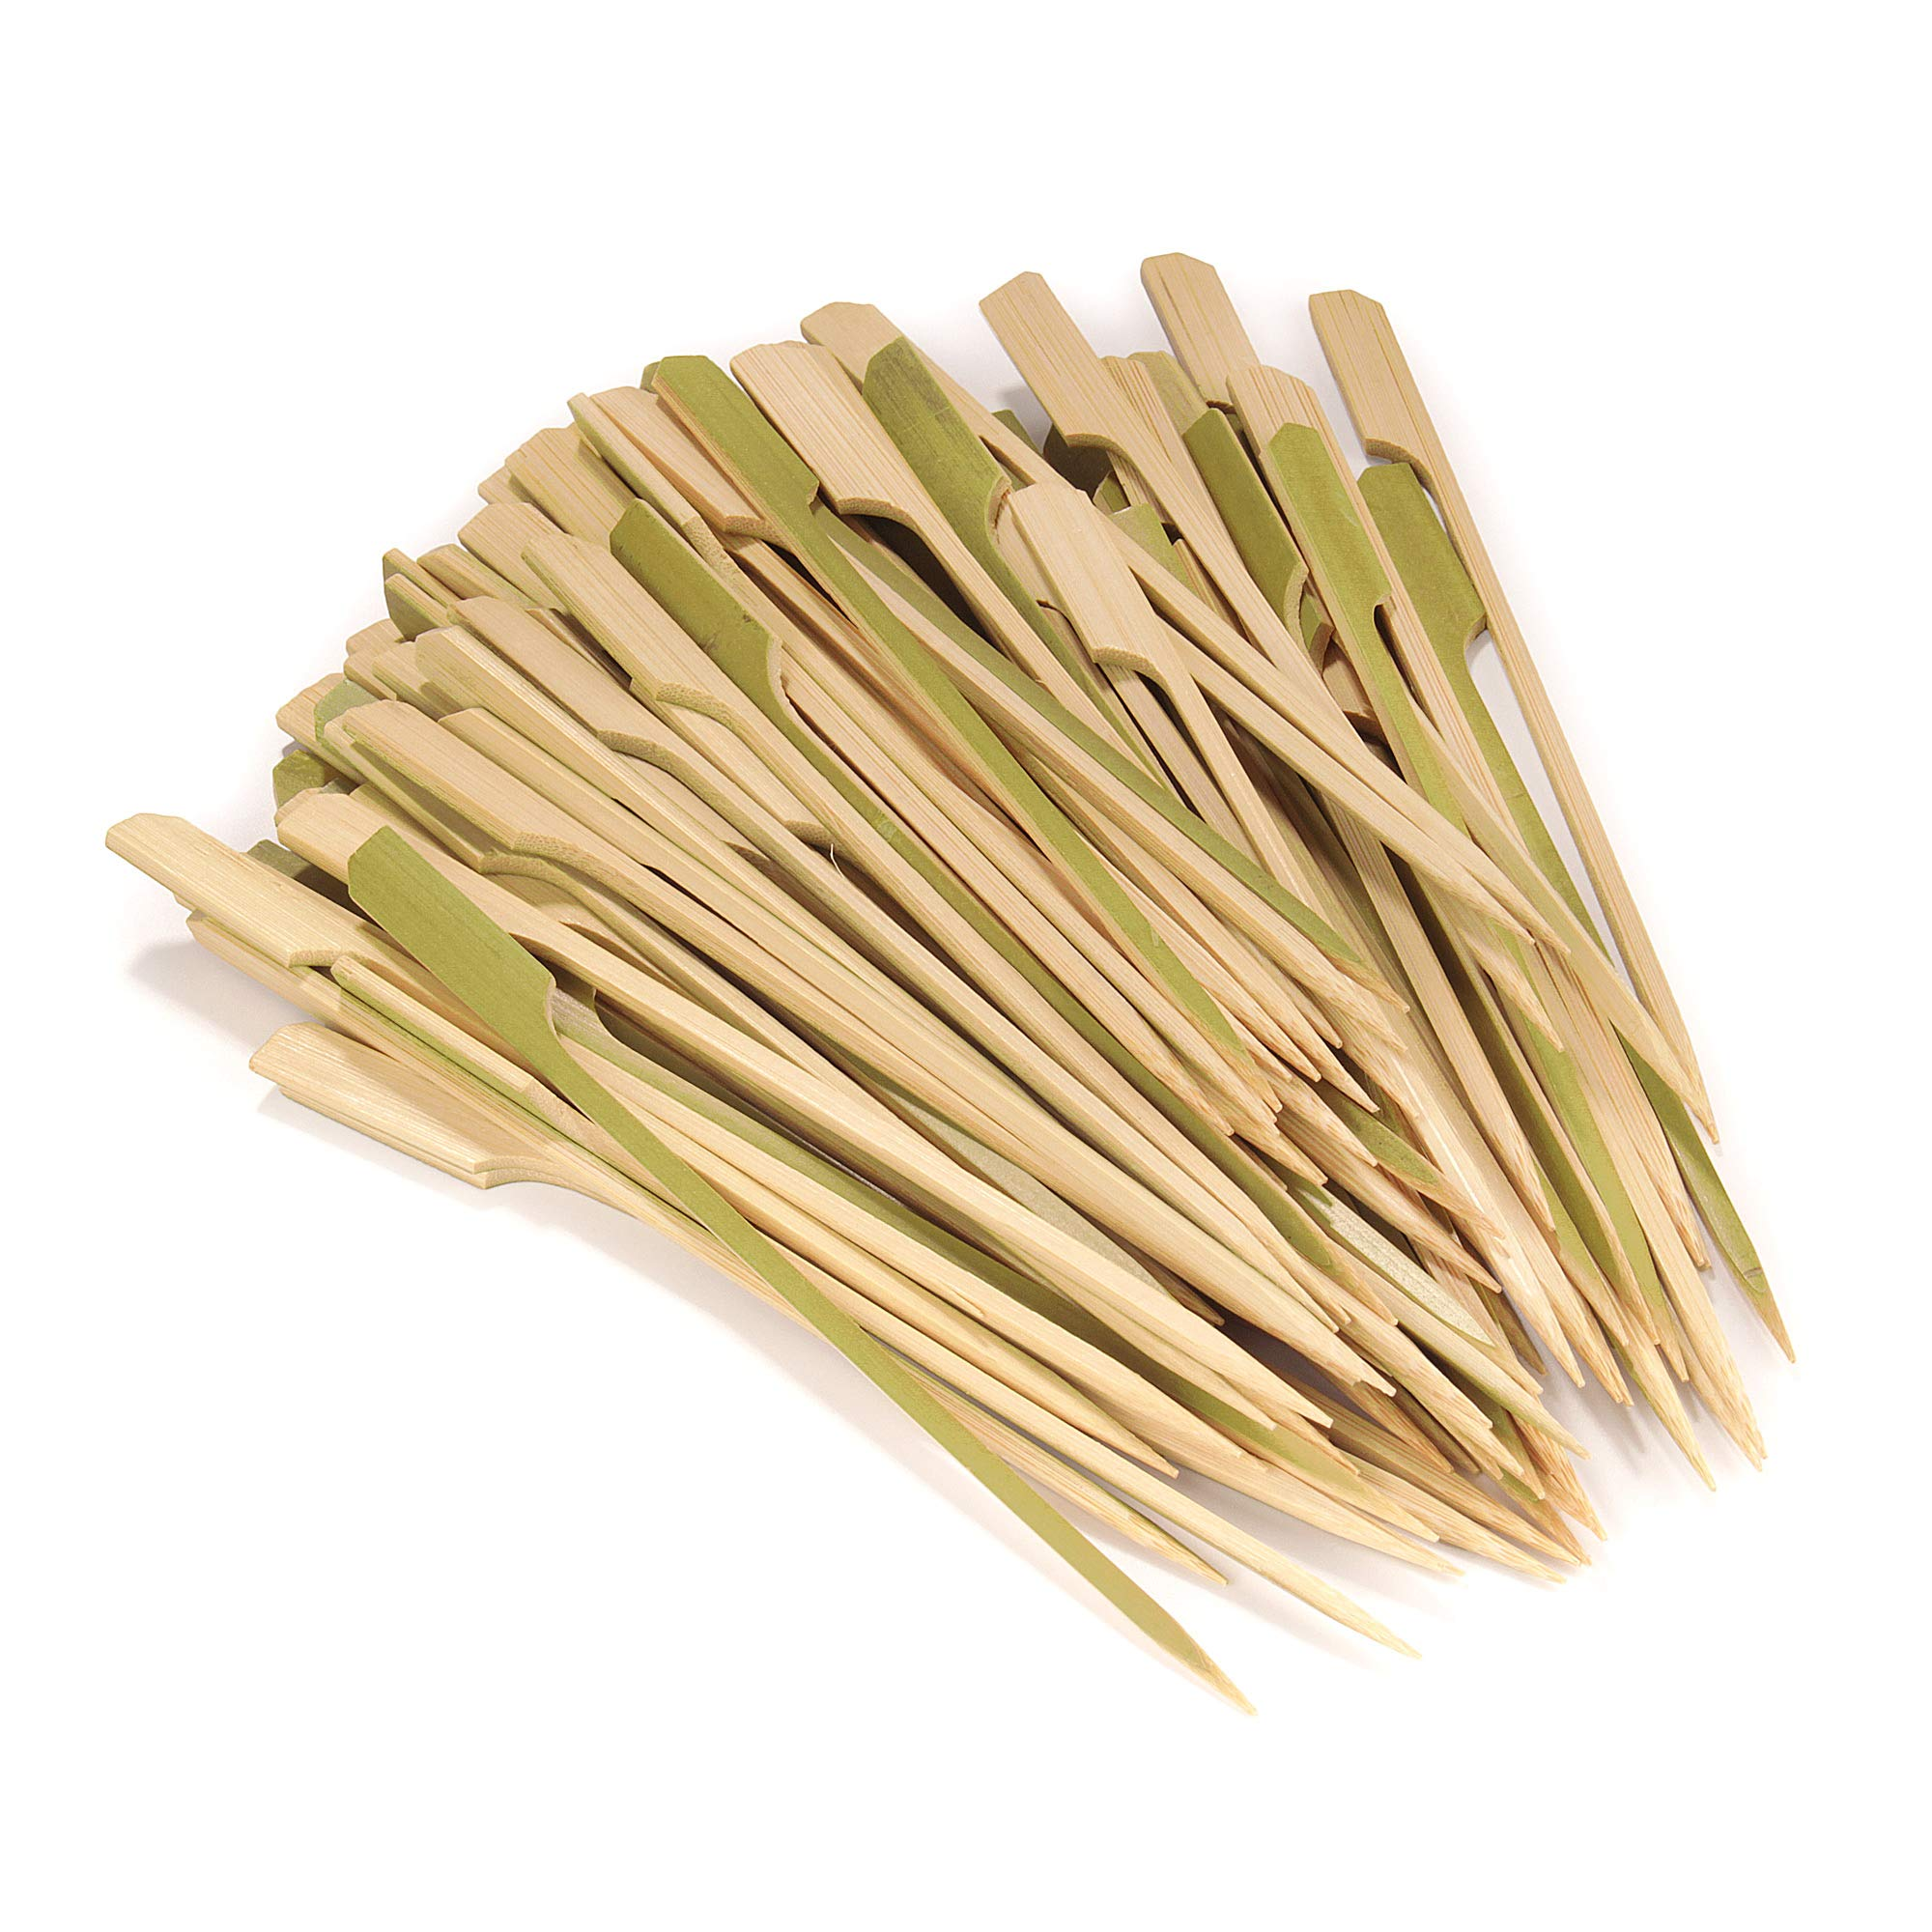 BambooMN 7.1'' Bamboo Paddle Cocktail Fruit Sandwich Food Picks Skewers for Catered Events, Holiday's, Restaurants or Buffets Party Supplies, 1000 Pieces